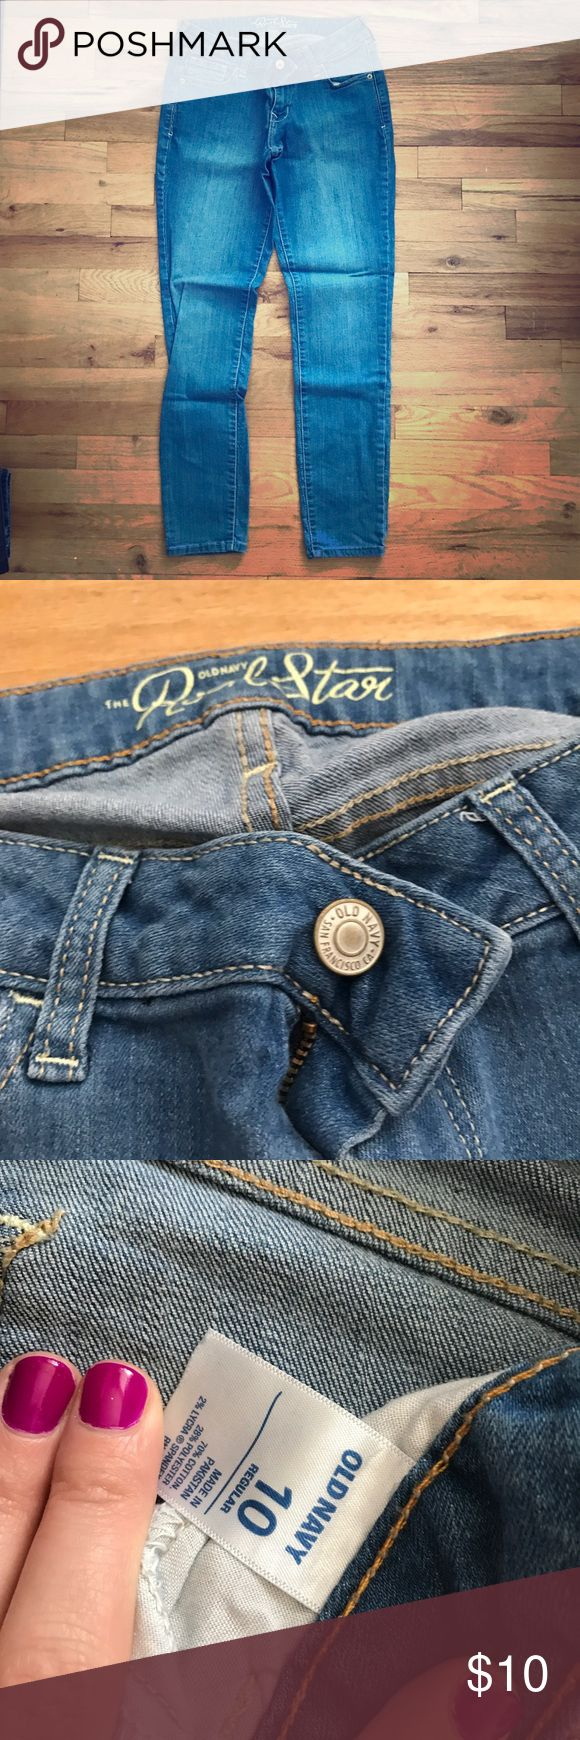 Old Navy Rockstar Jean 10 Old Navy Rockstar Jean 10. Excellent Condition. Old Navy Jeans Skinny